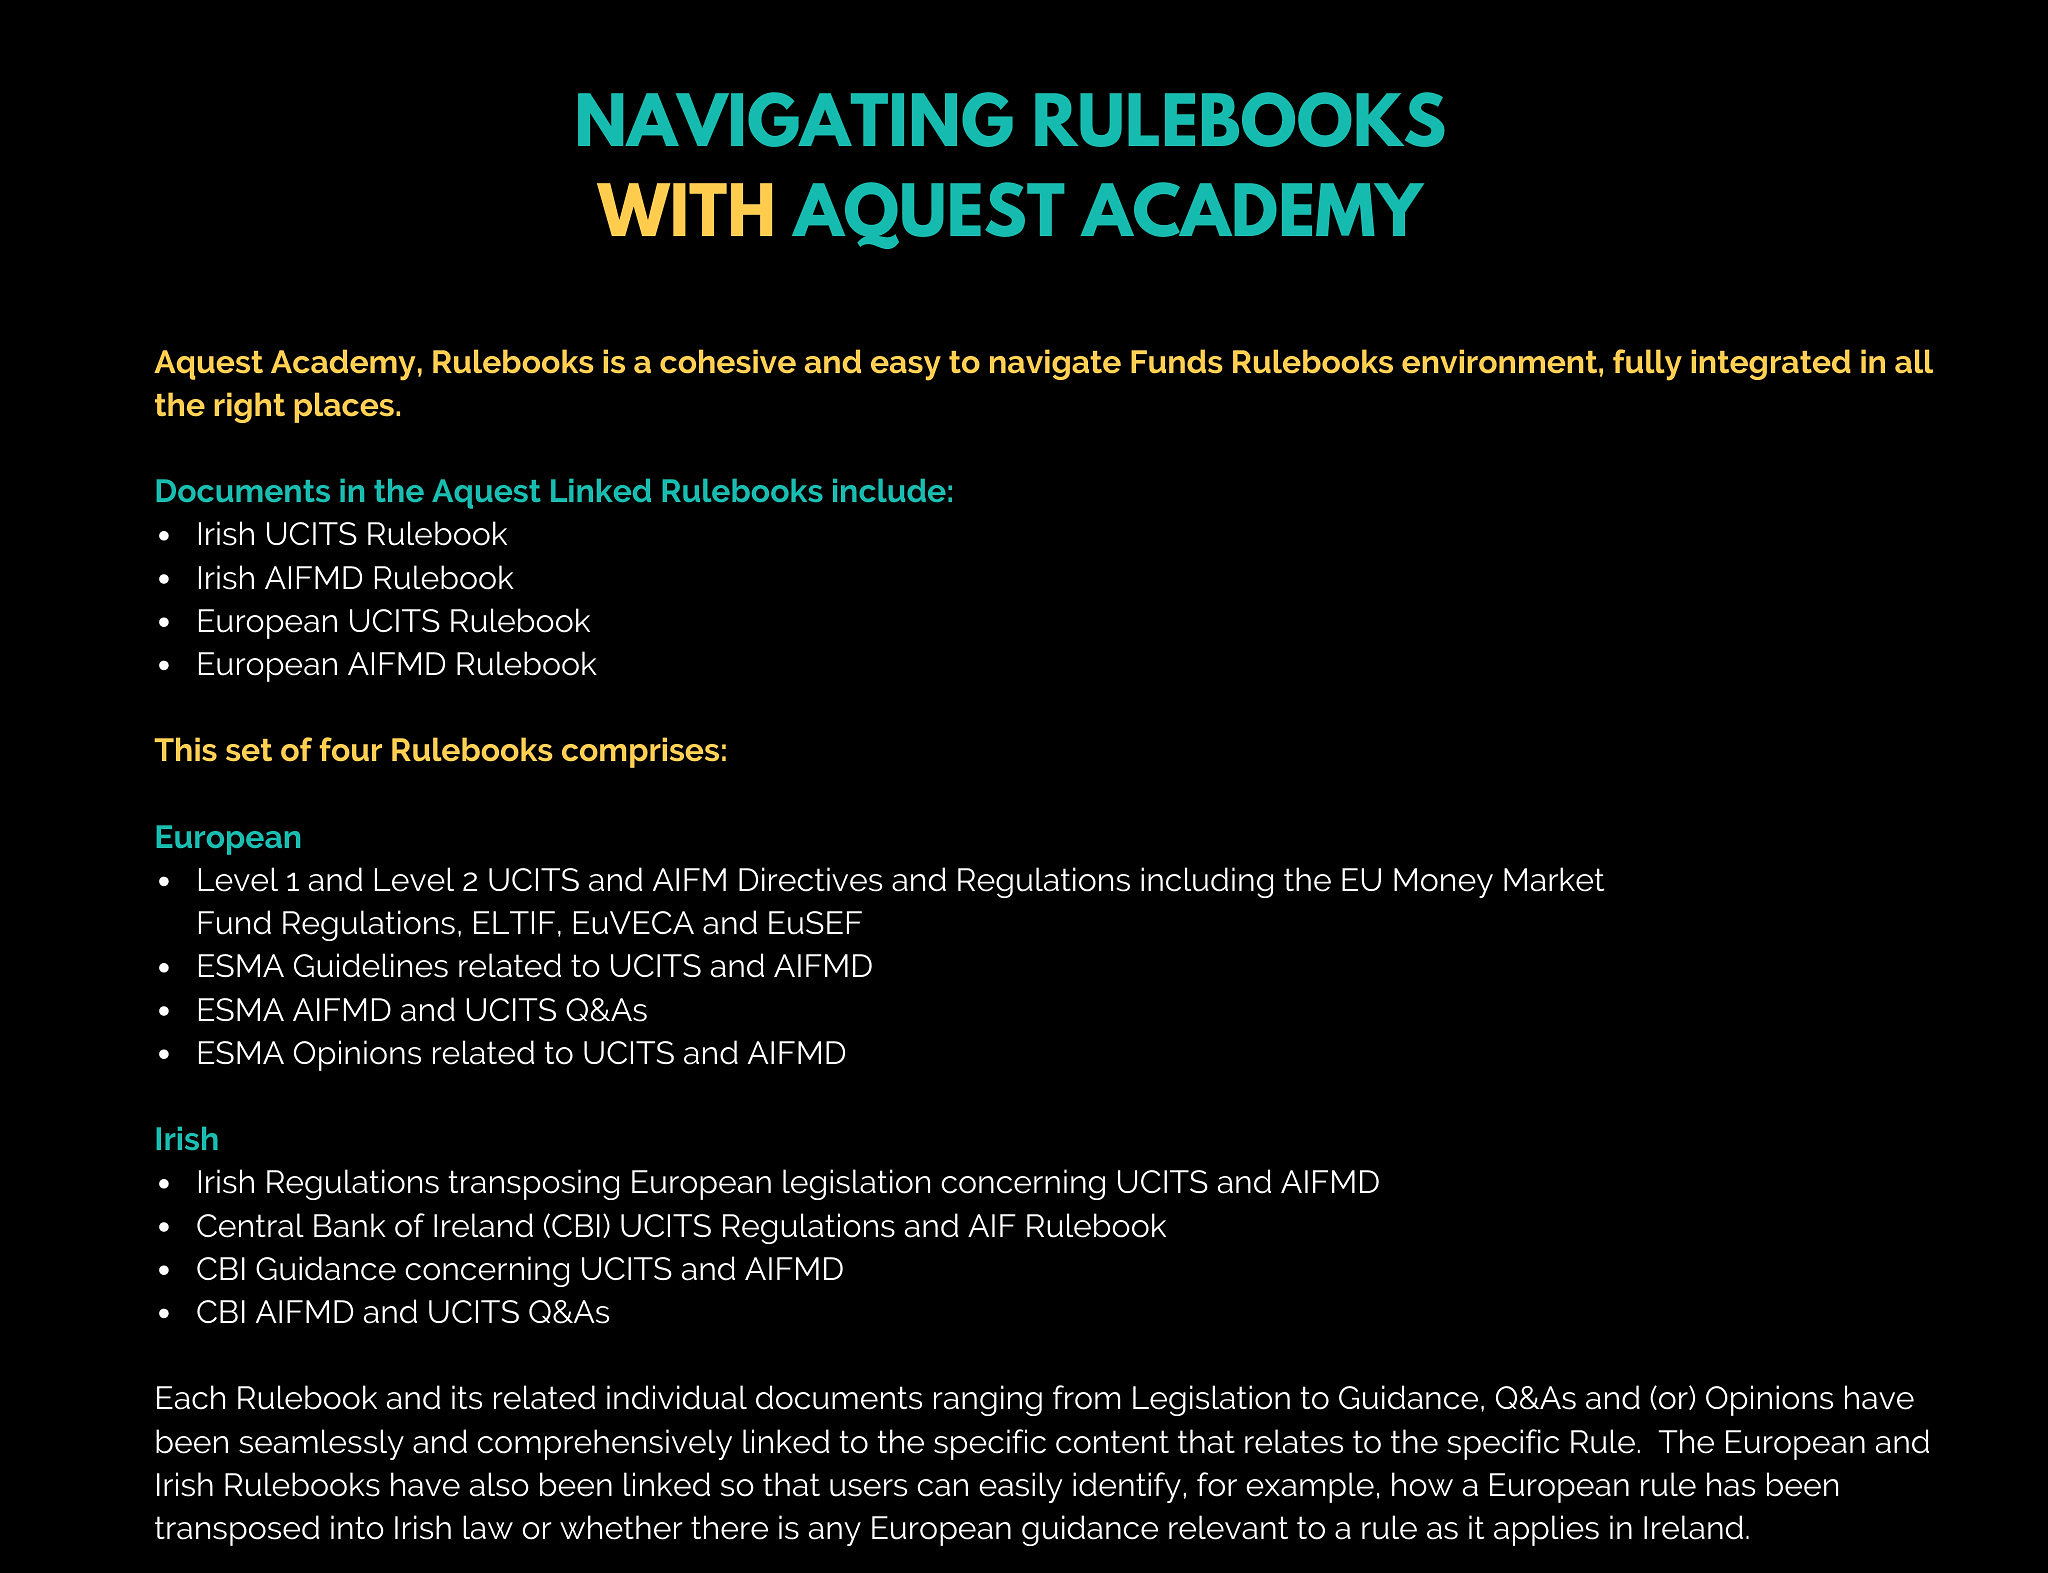 navigating rulebooks with aquest academy